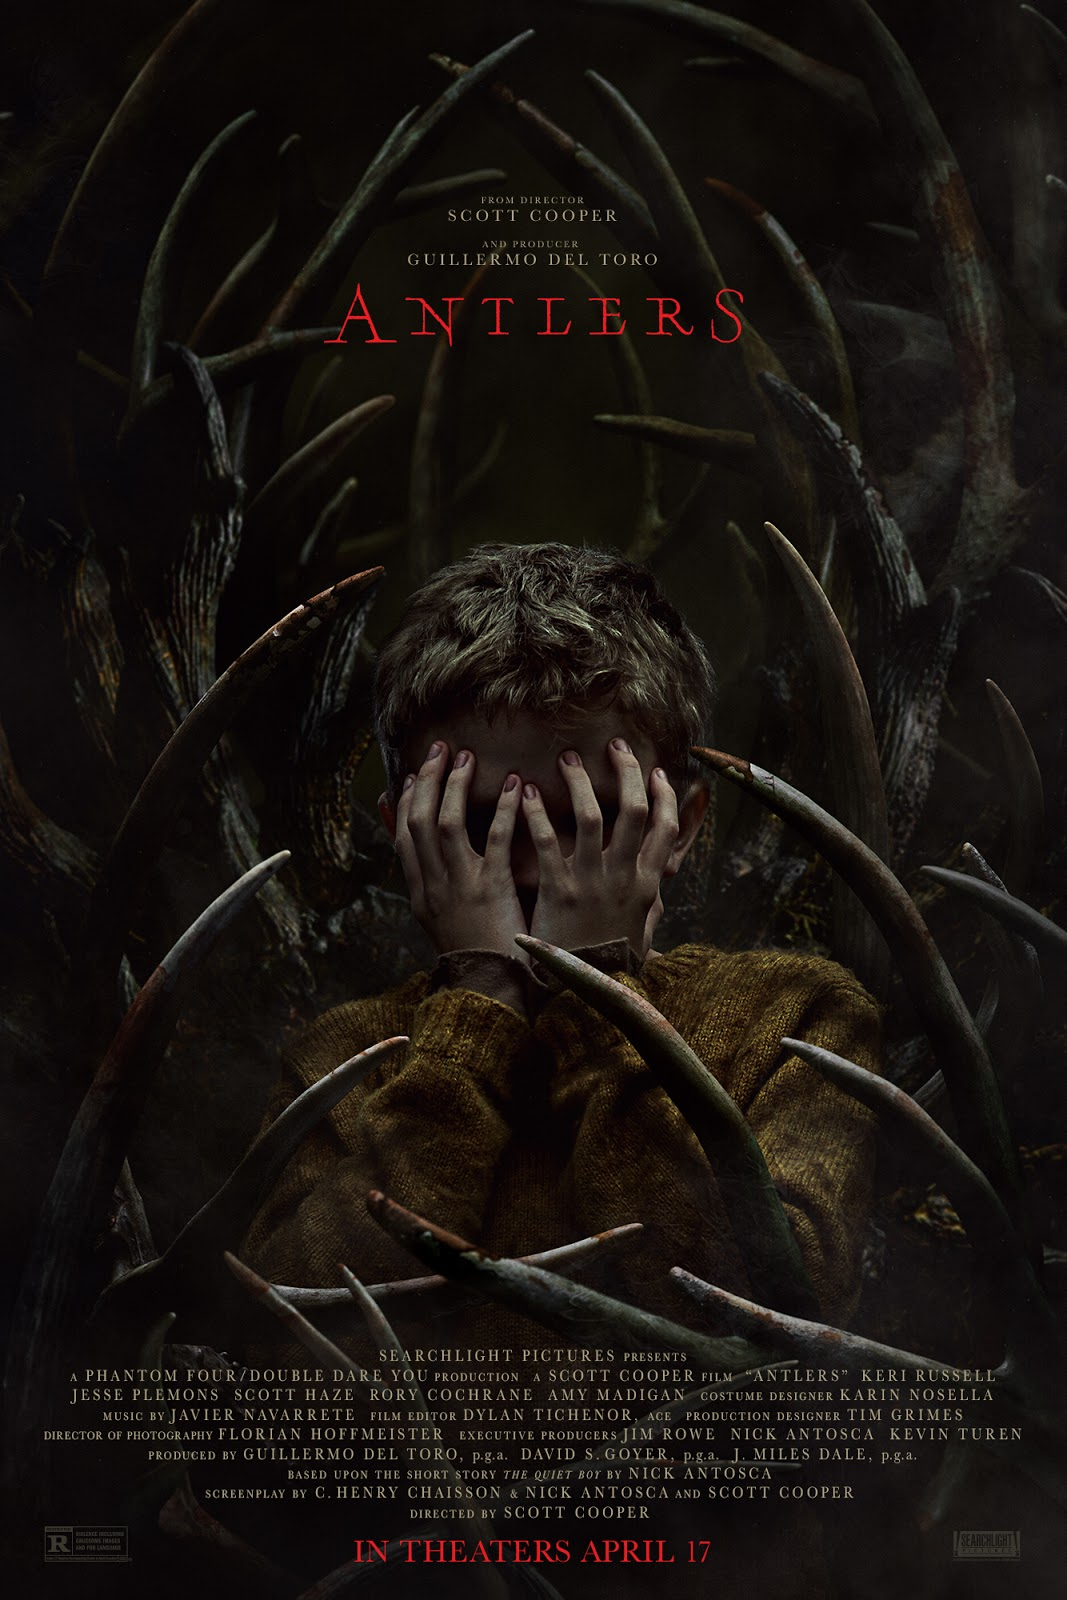 Antlers Full Movie Download In Hd Leaked By 123movies Go Movies Putlocker Movies Reviewer Current Movie Reviews And Ratings